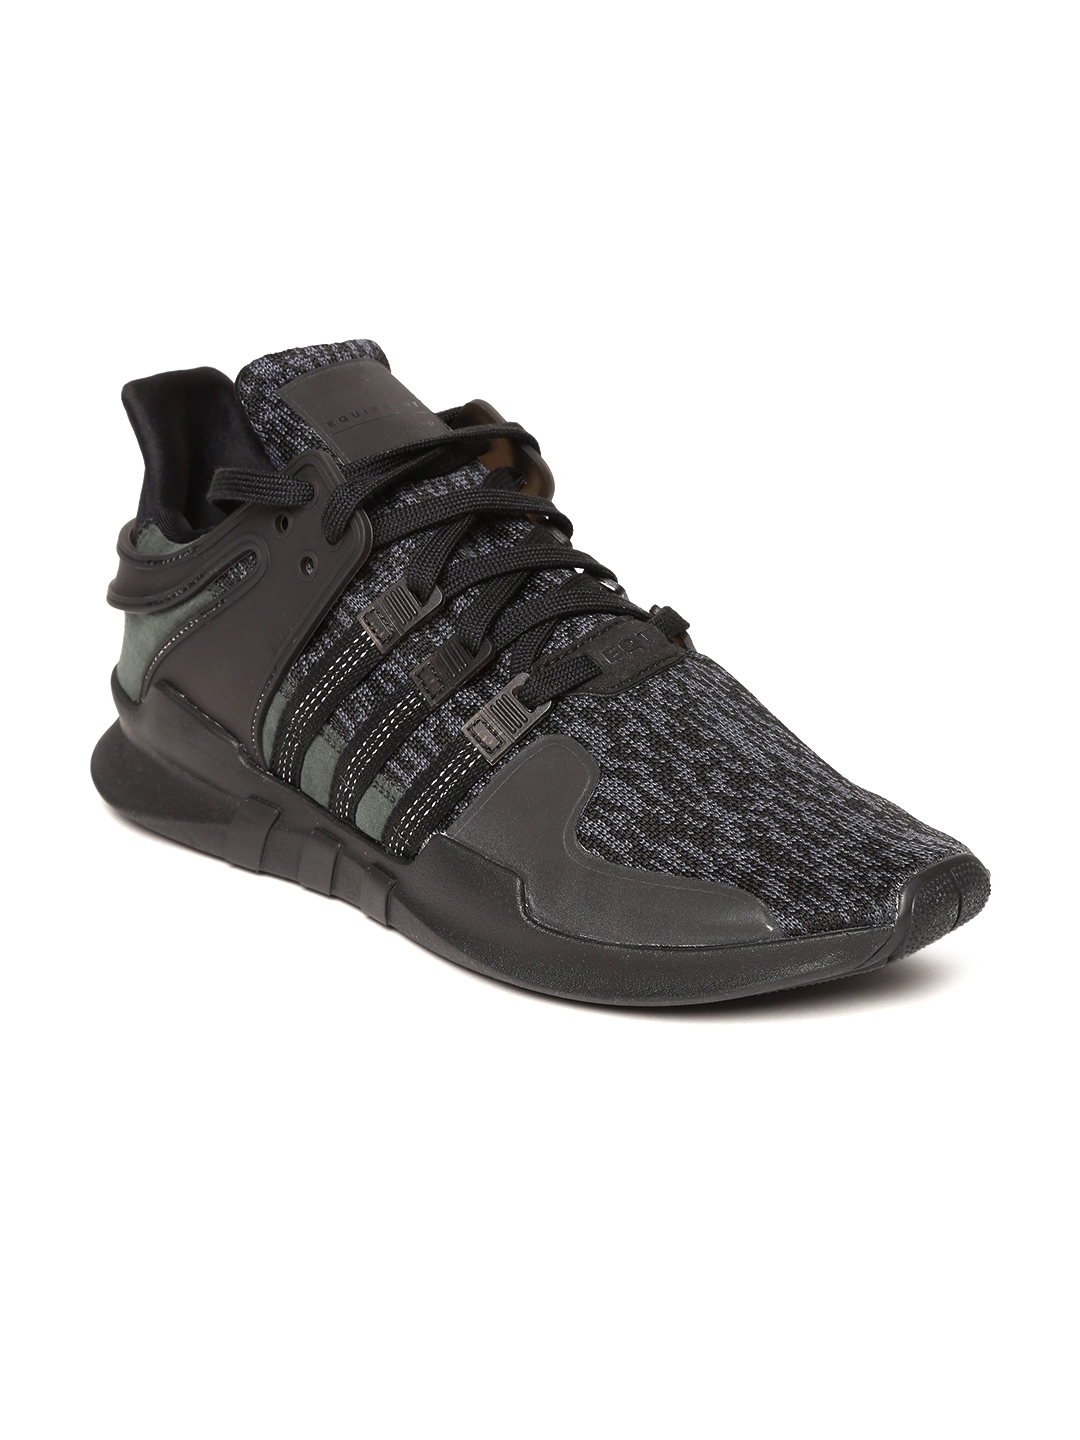 06b2548feb28e2 ADIDAS Originals Men Black EQT Support Advance Woven Design Sneakers